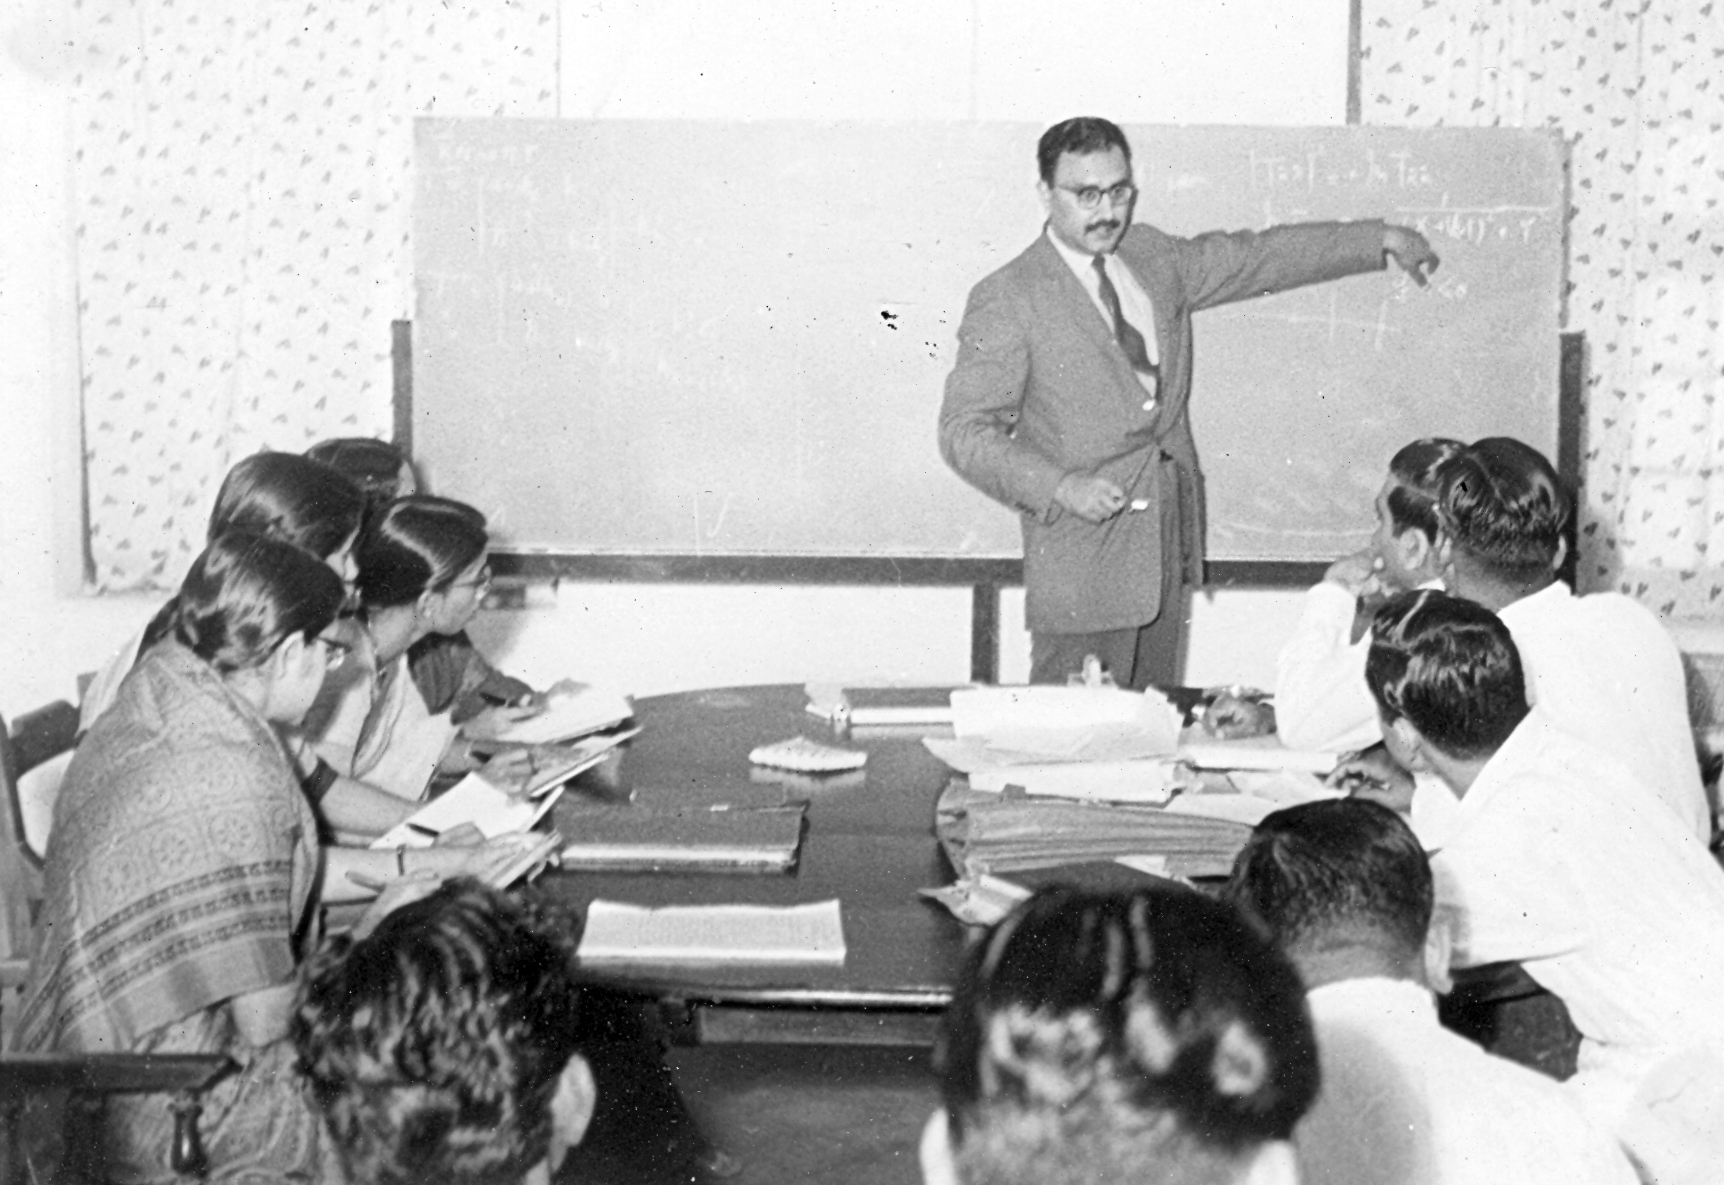 Professor Abdus Salam, FRS (Imperial College, London), lecturing at Alladi Ramakrishnan's Theoretical Physics Seminar at Ekamra Nivas, Jan 1960. Photo credit: Alladi Krishnaswami.